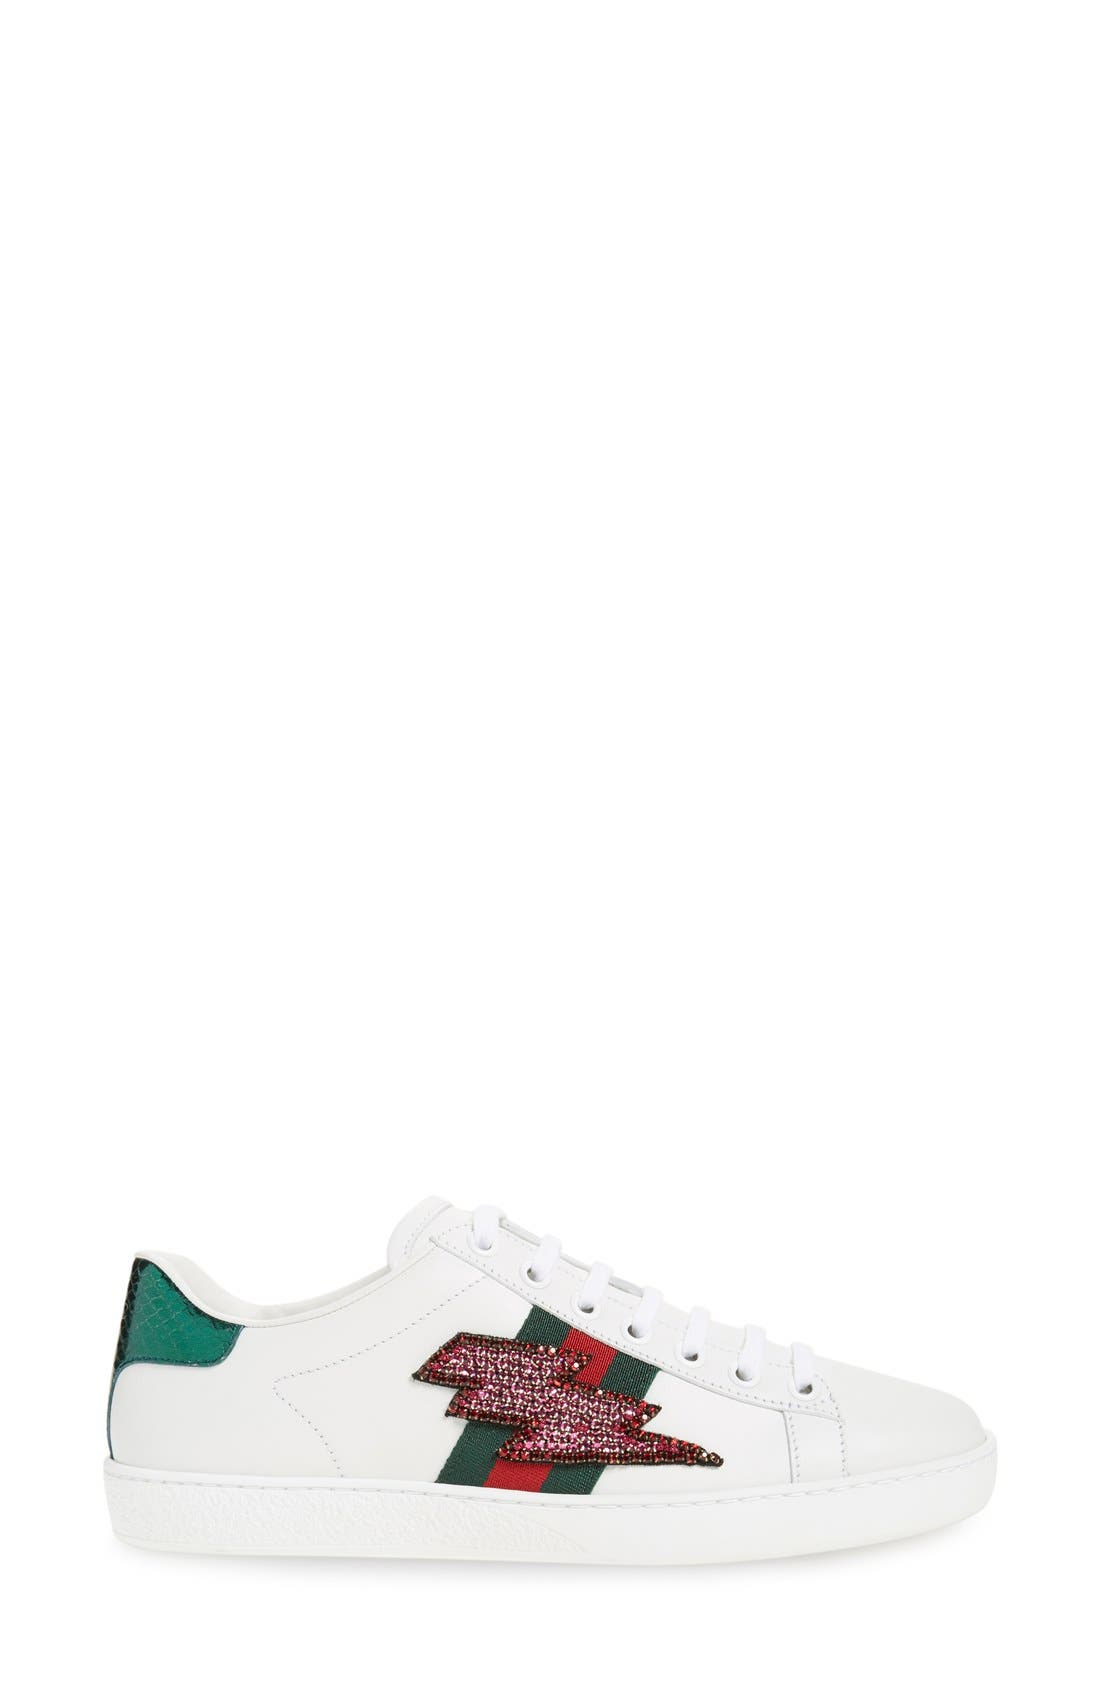 'New Ace' Low Top Sneaker,                             Alternate thumbnail 18, color,